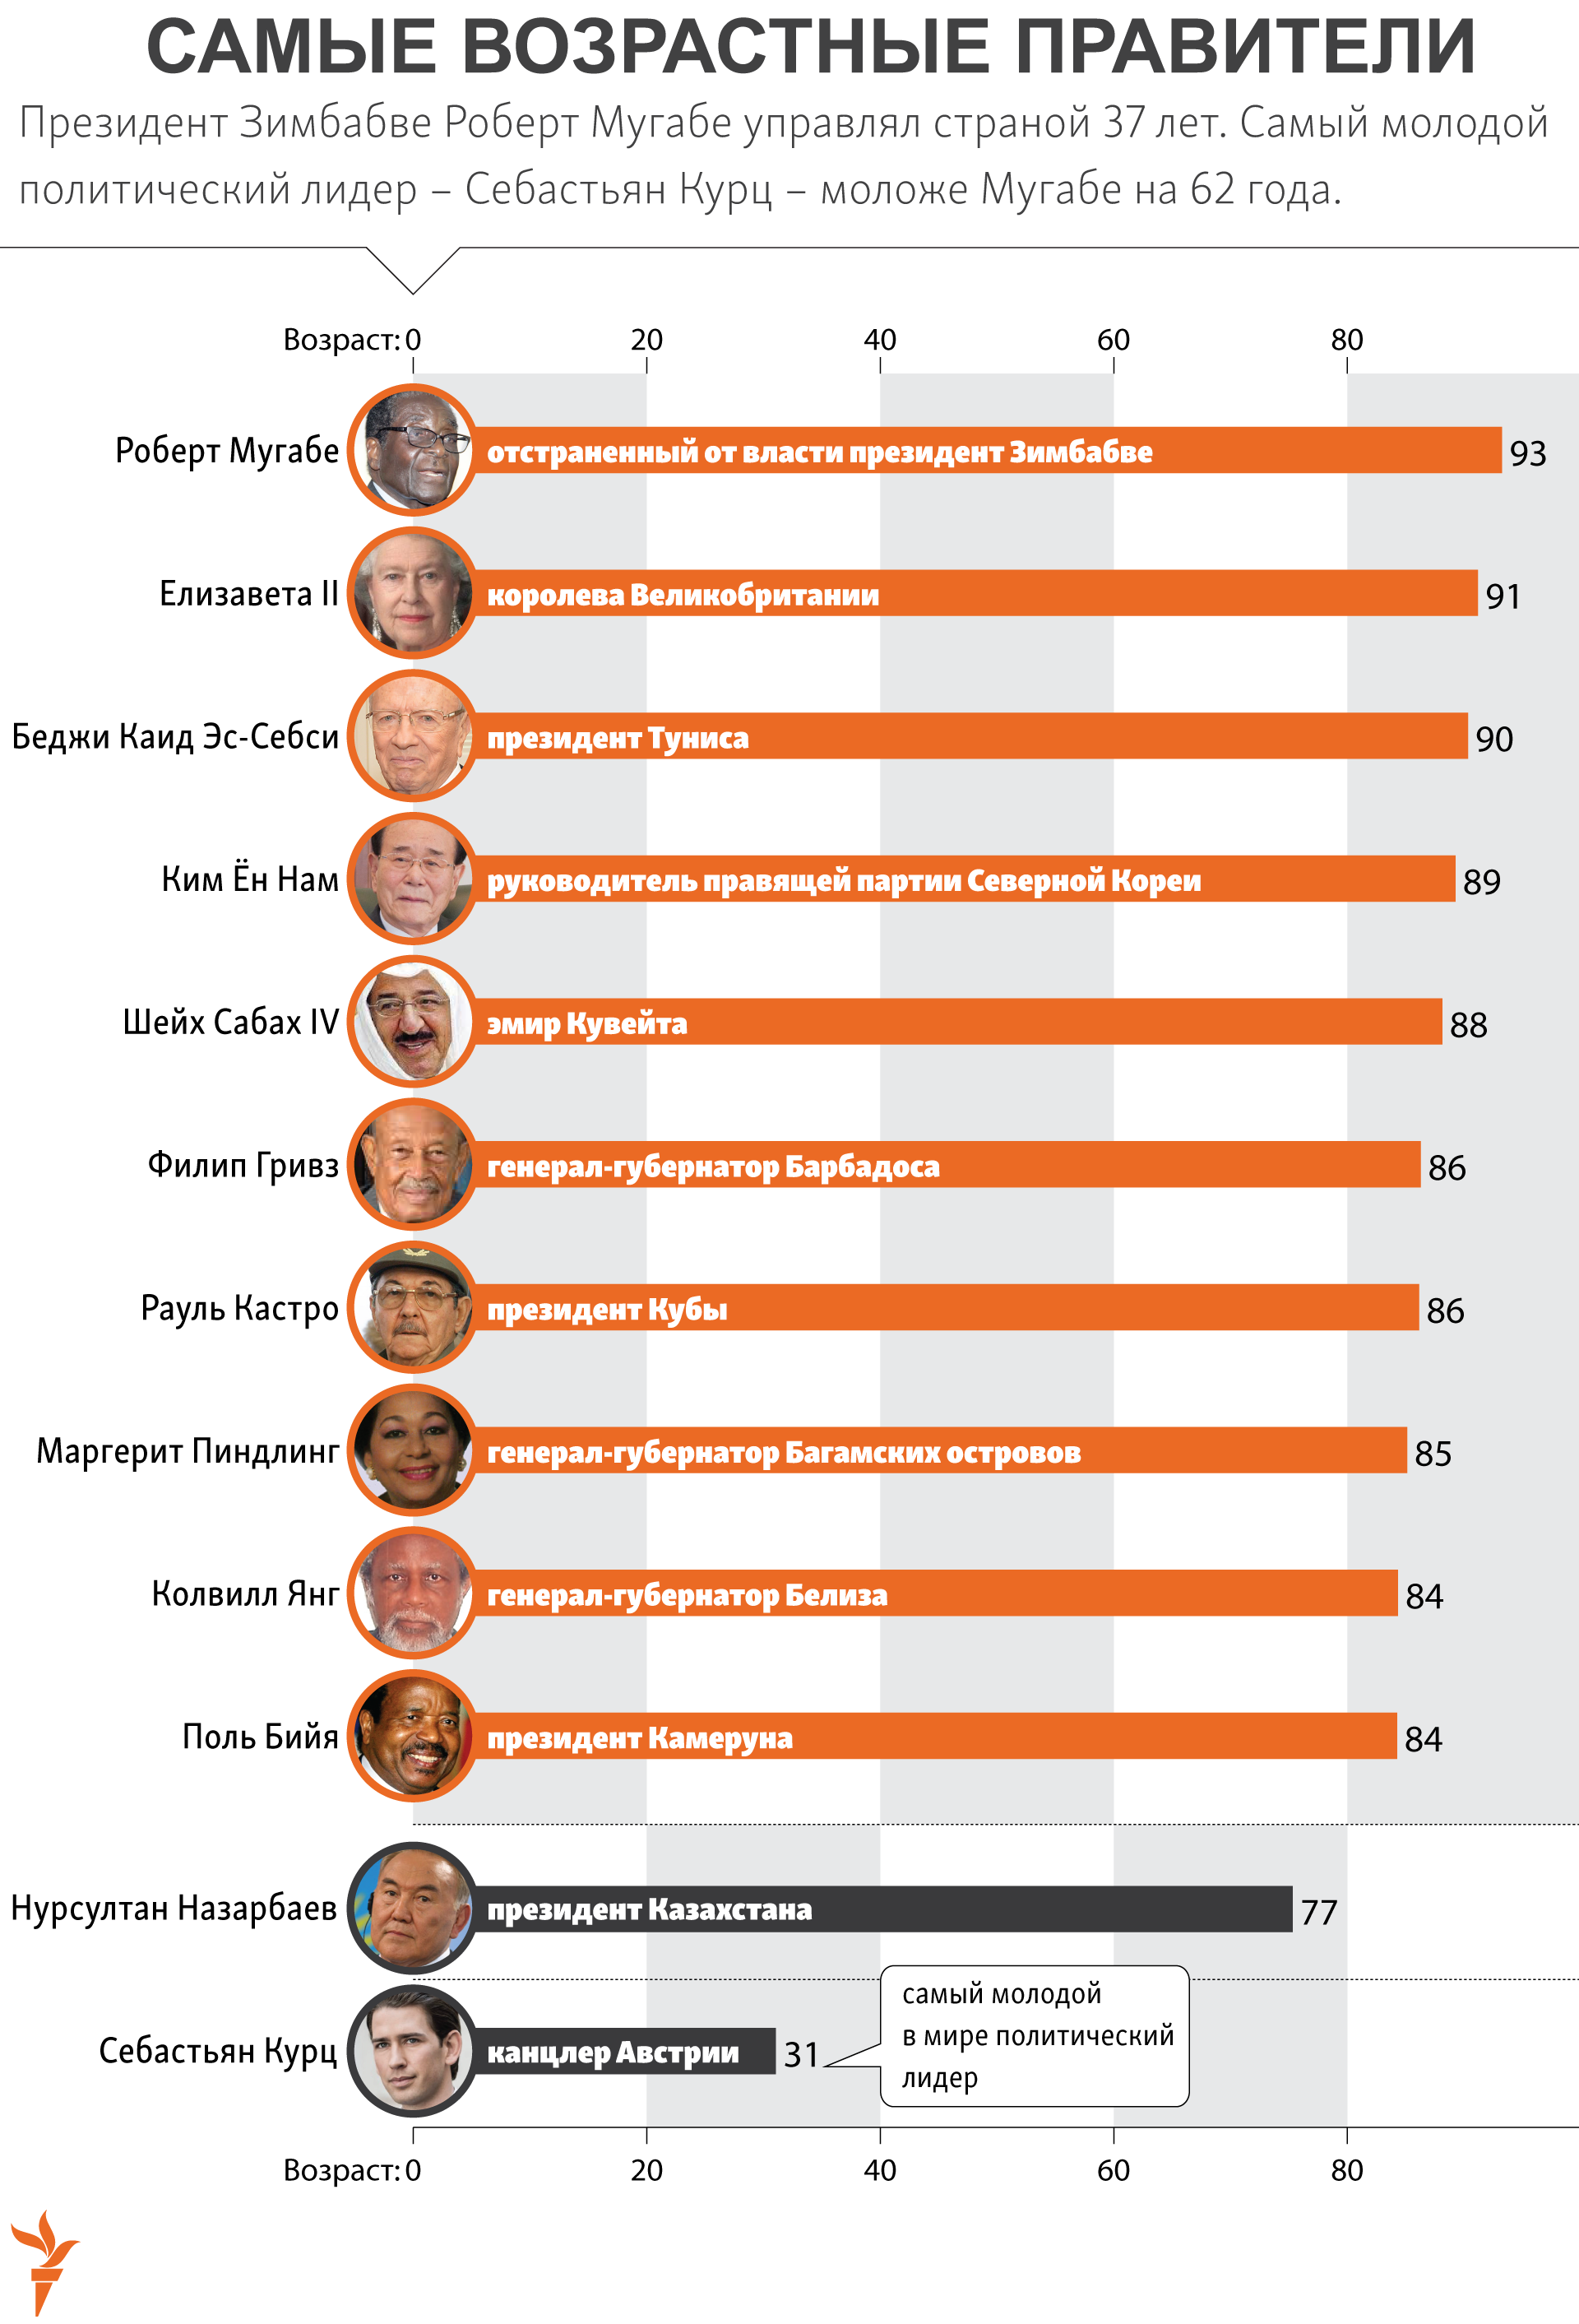 infographic about oldest leaders